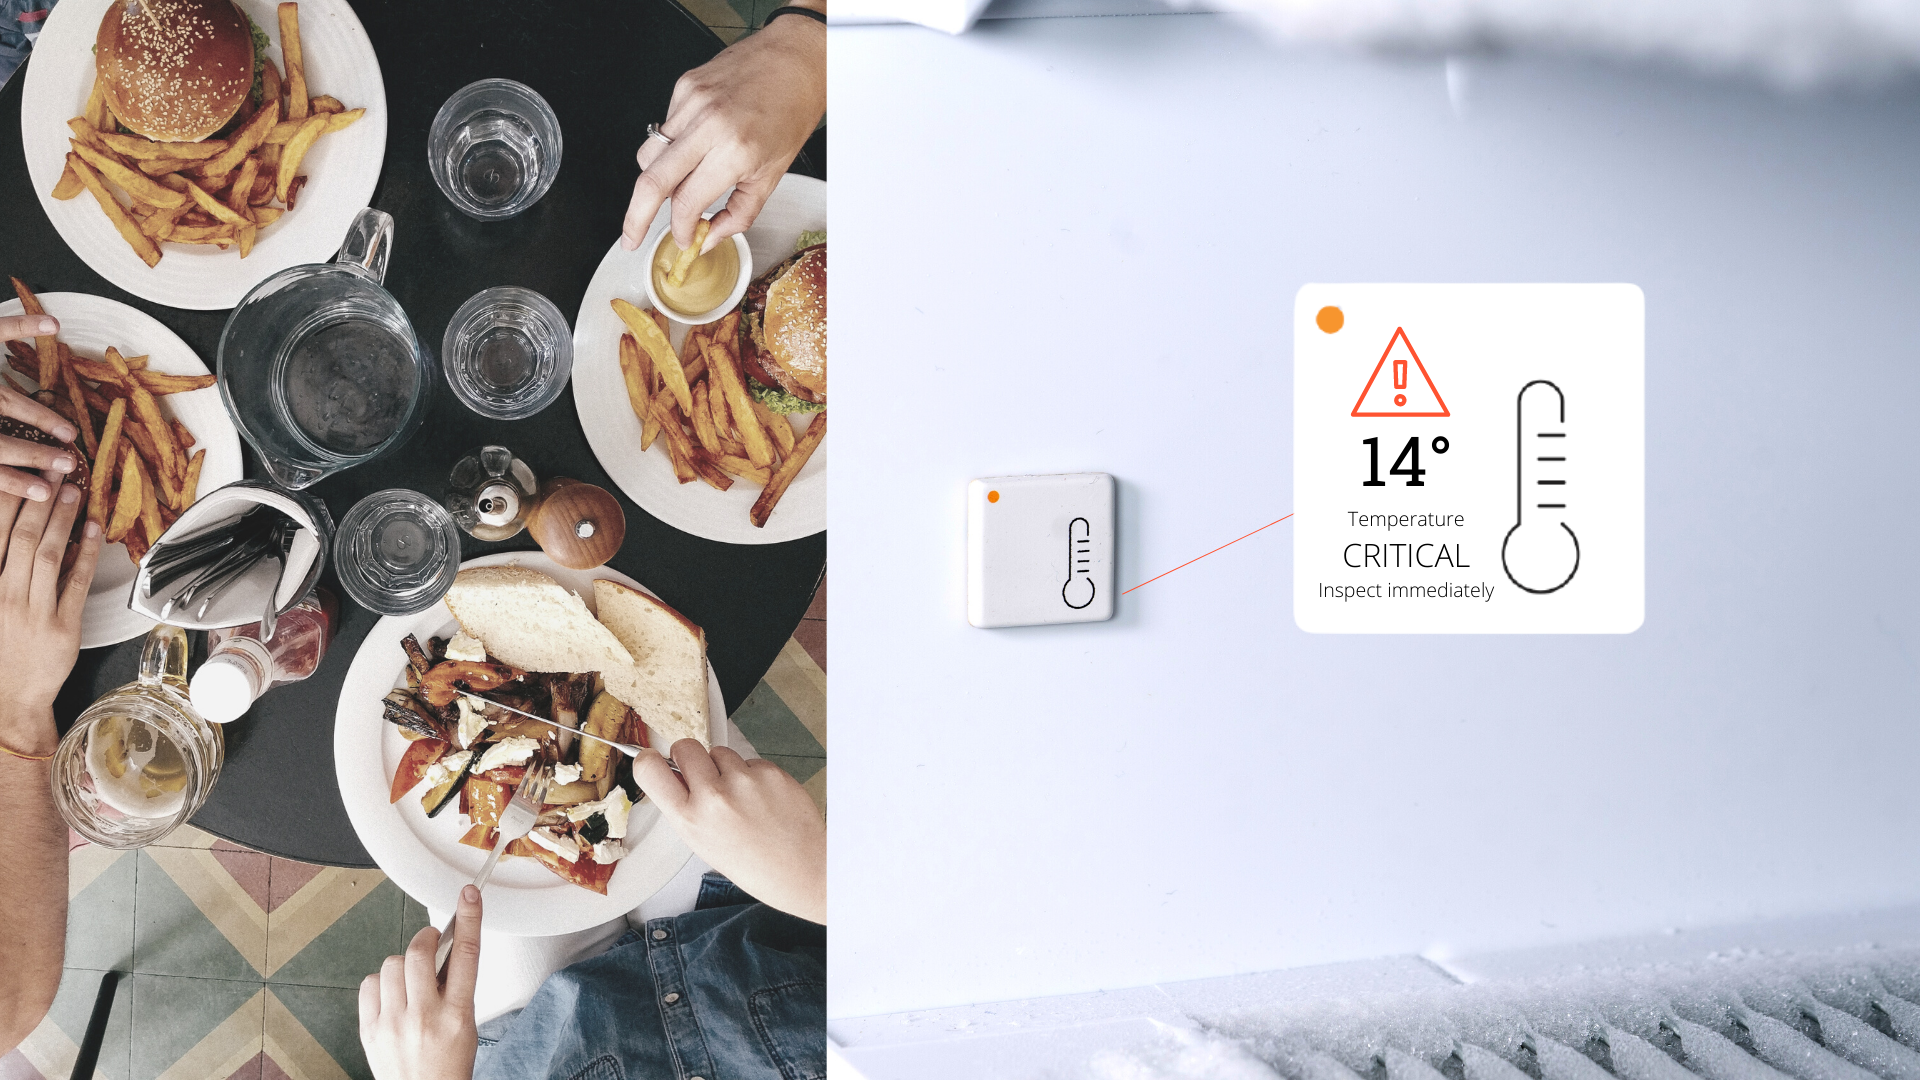 Case Study: Global Restaurant Chain Immediately Saved £1.25M with Sensor Technology